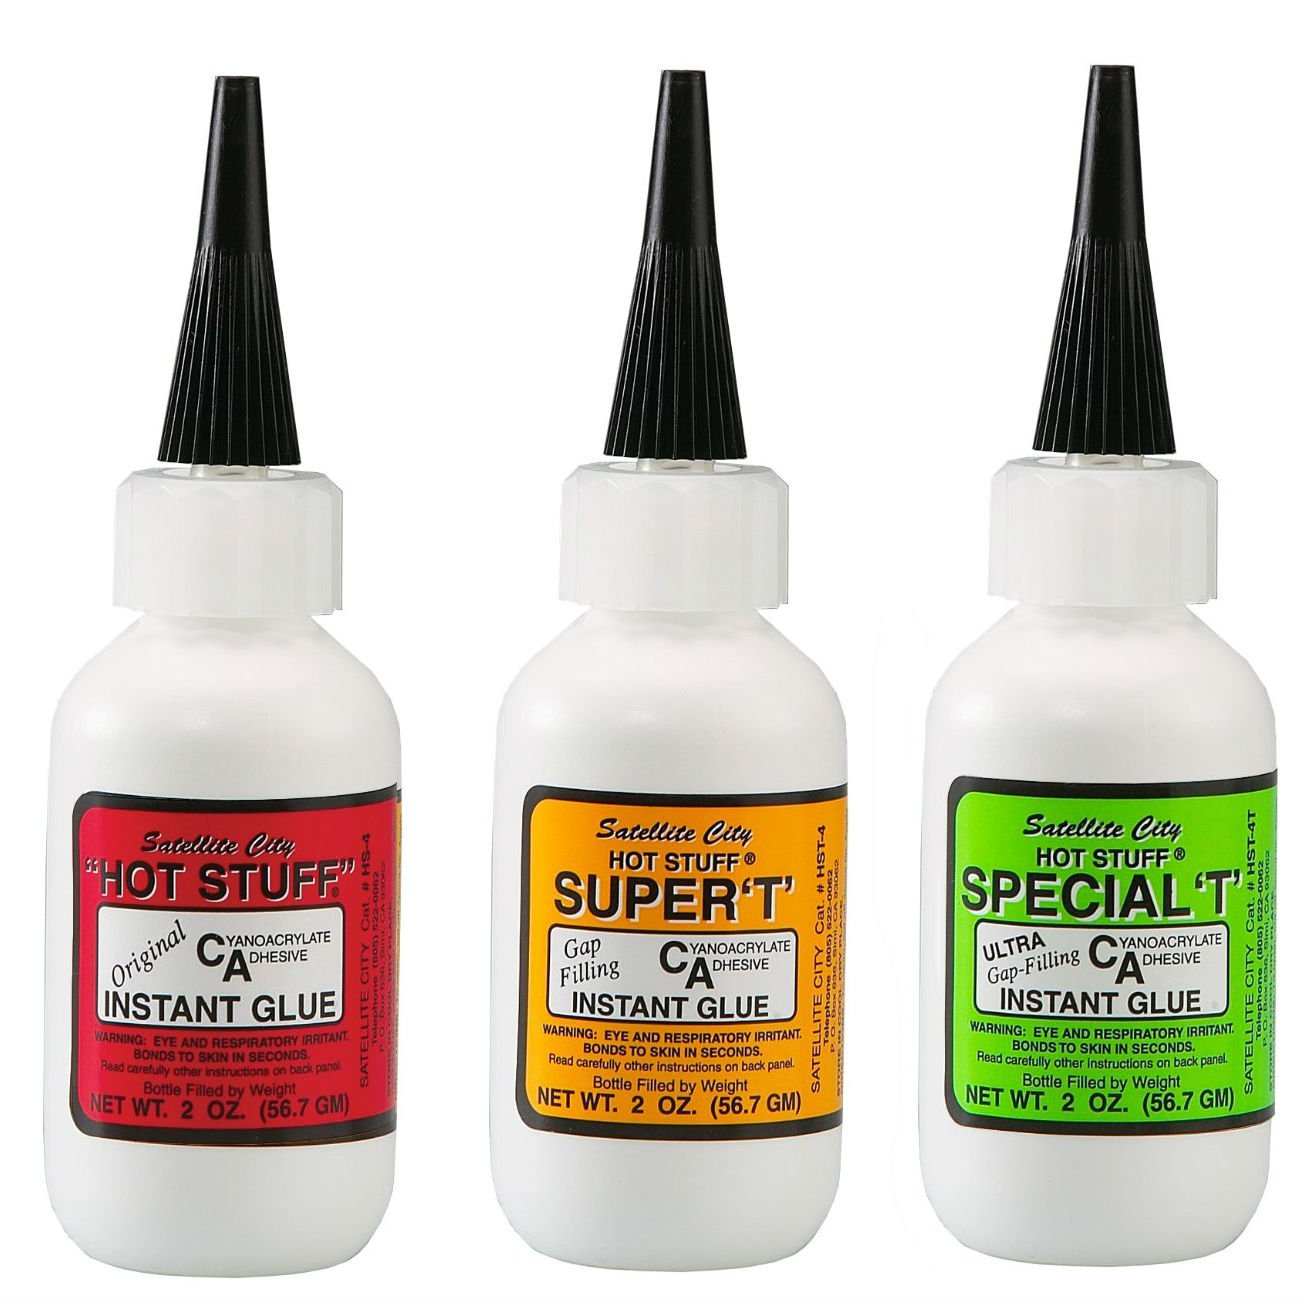 Satellite City CA Glue Set of 3 - (1) Original Thin, (1) Super T Medium, (1) Special T Thick - 2 oz Bottles